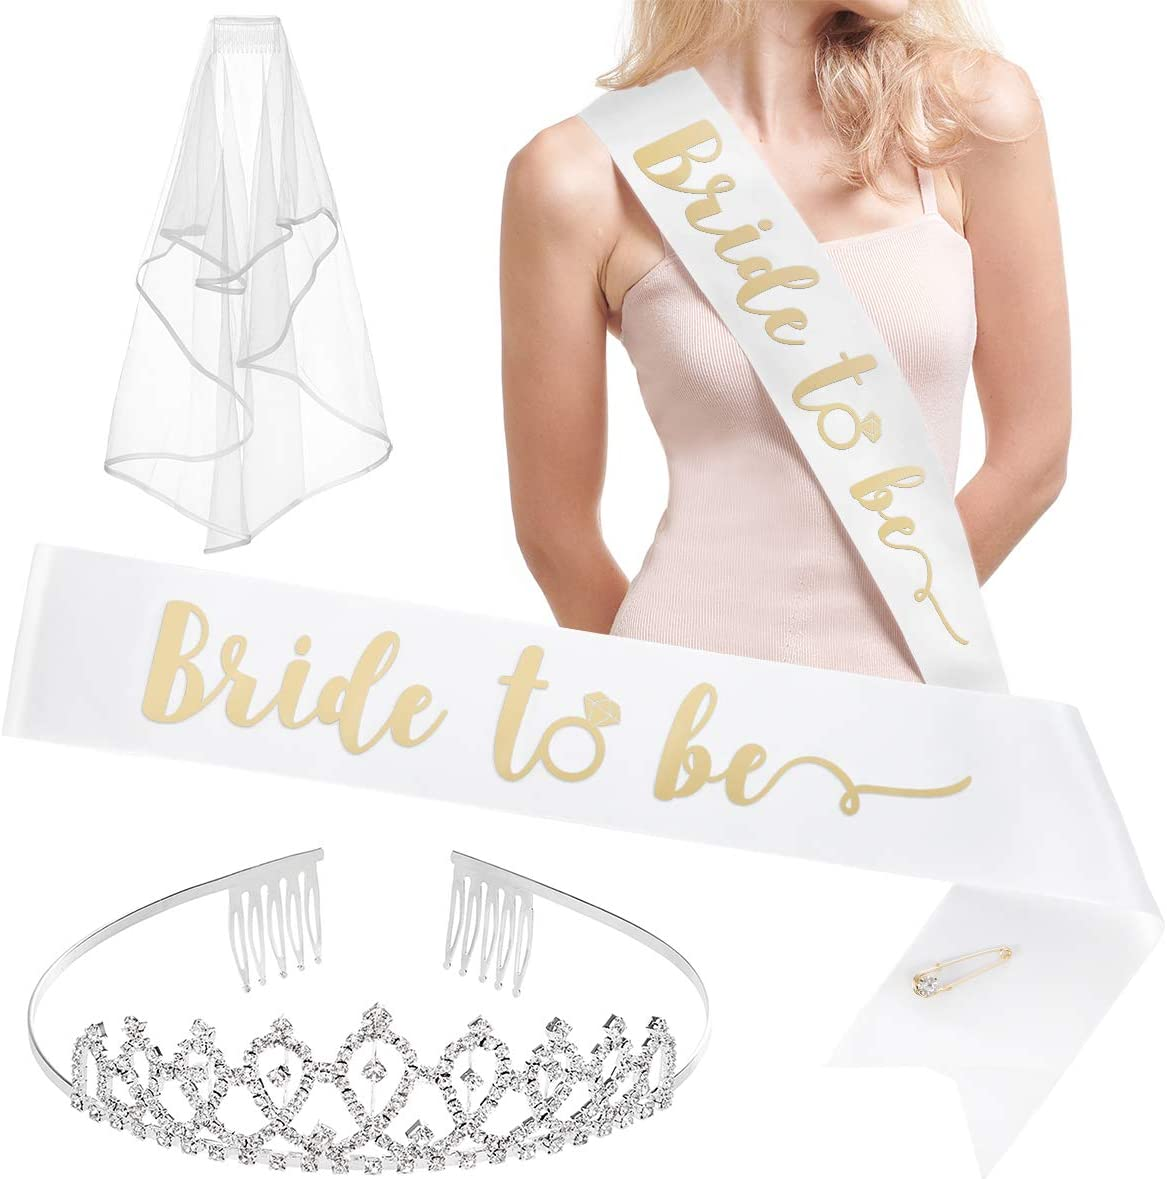 xo, Fetti Bachelorette Party Bride to Be Decorations Kit - Bridal Shower Decorations | Sash for Bride, Rhinestone Tiara, Gold Glitter Banner, Veil + Bride Tribe Tattoos: Kitchen & Dining